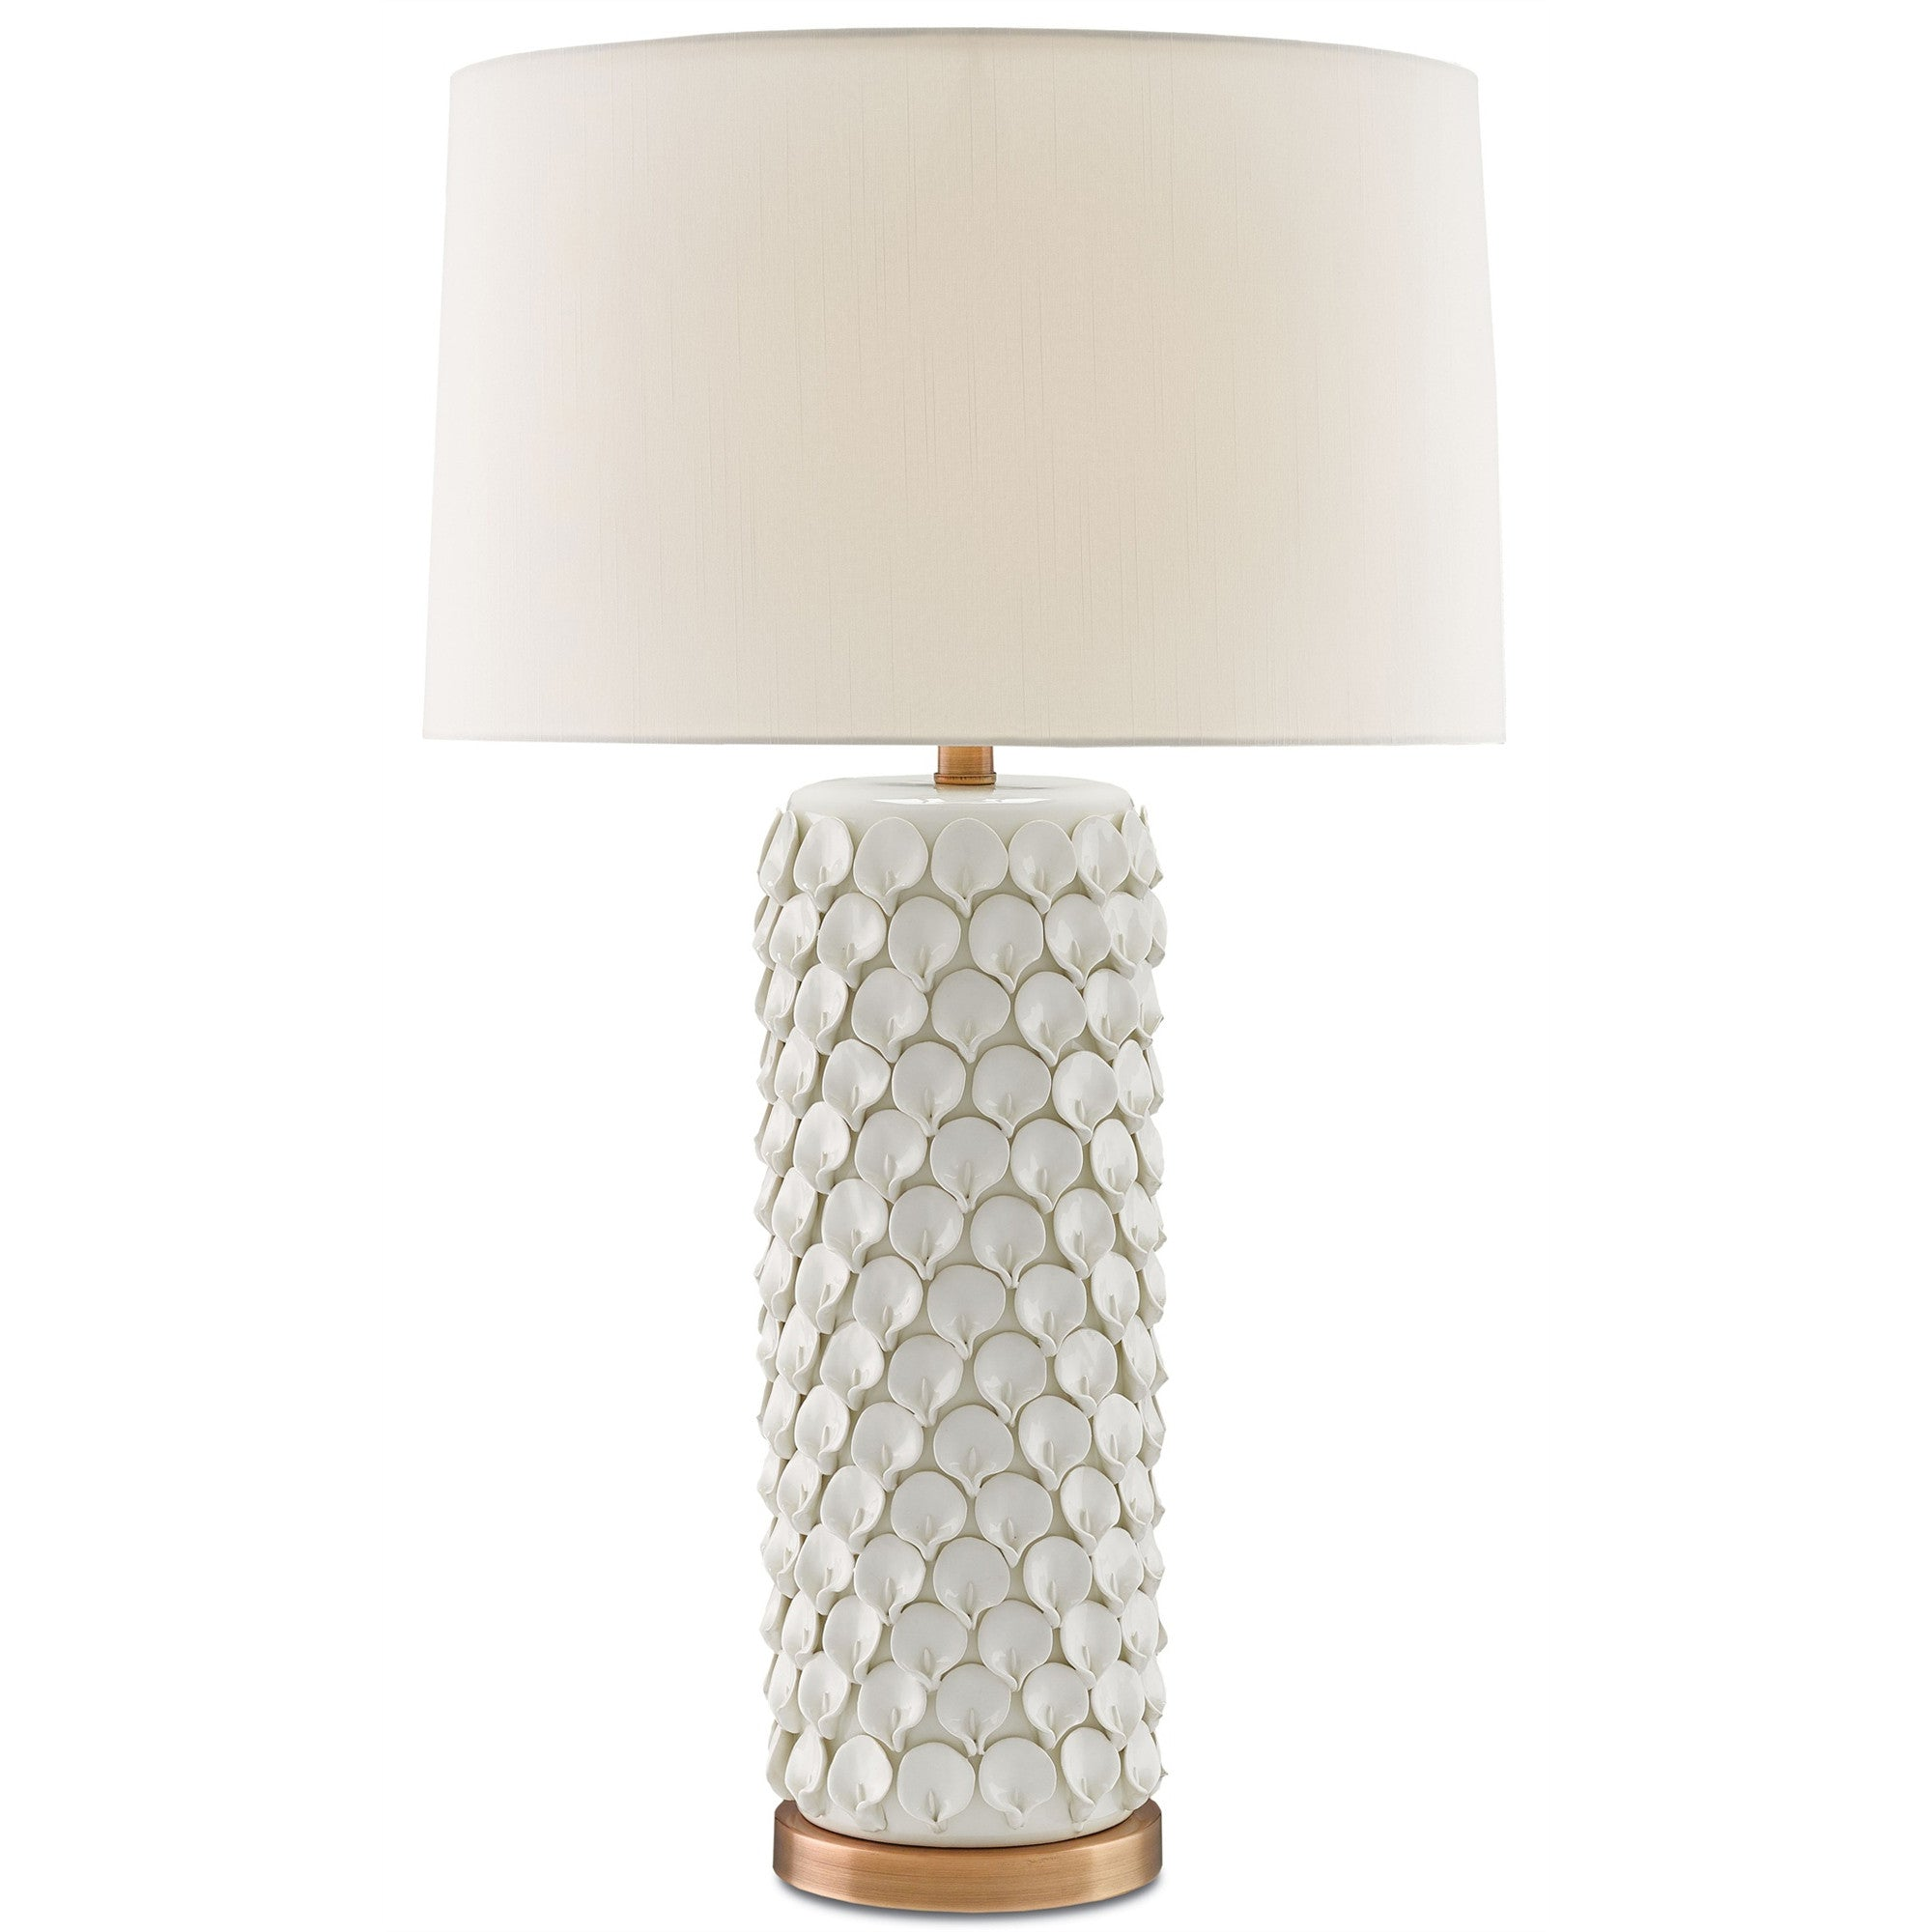 Currey and Co - Calla Lily Table Lamp